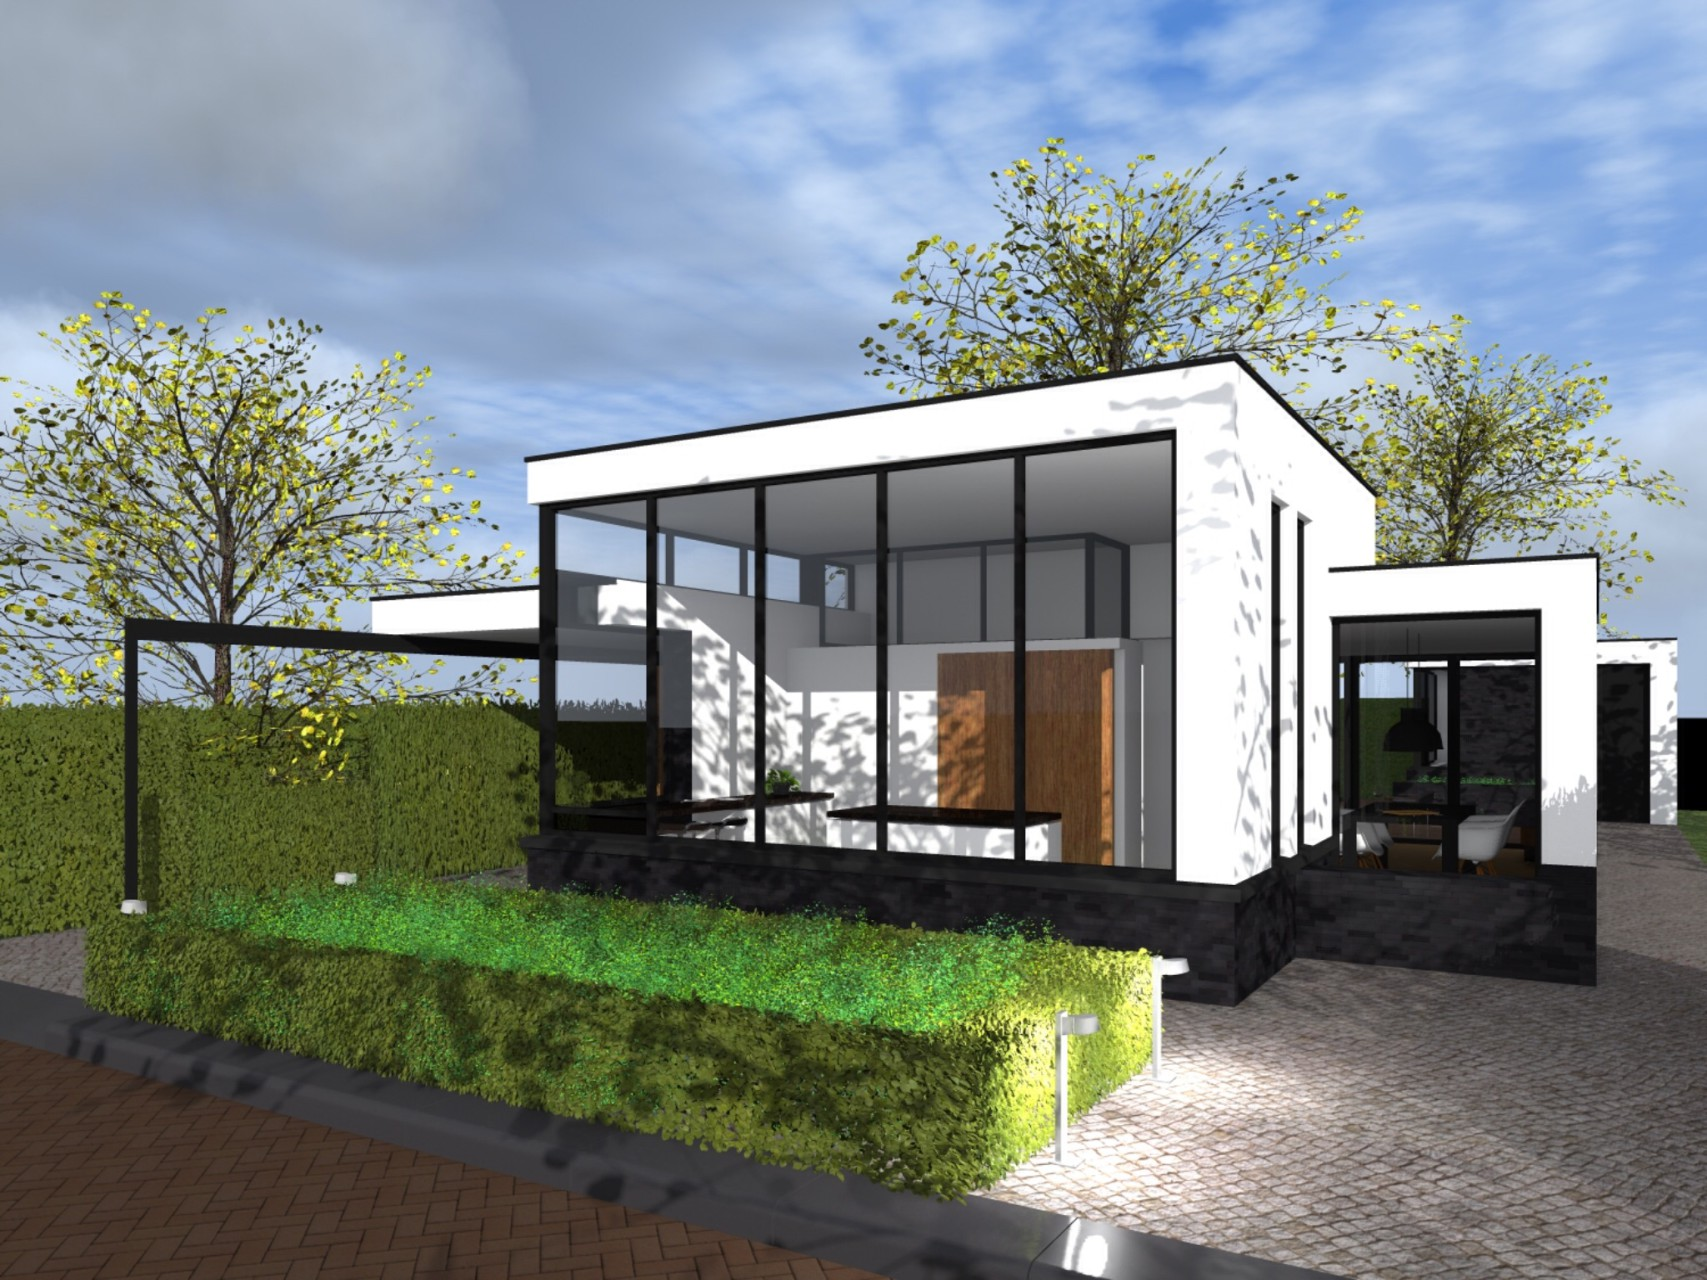 Moderne bungalow 2 rene scholten architectuur for Moderne bungalow architectuur